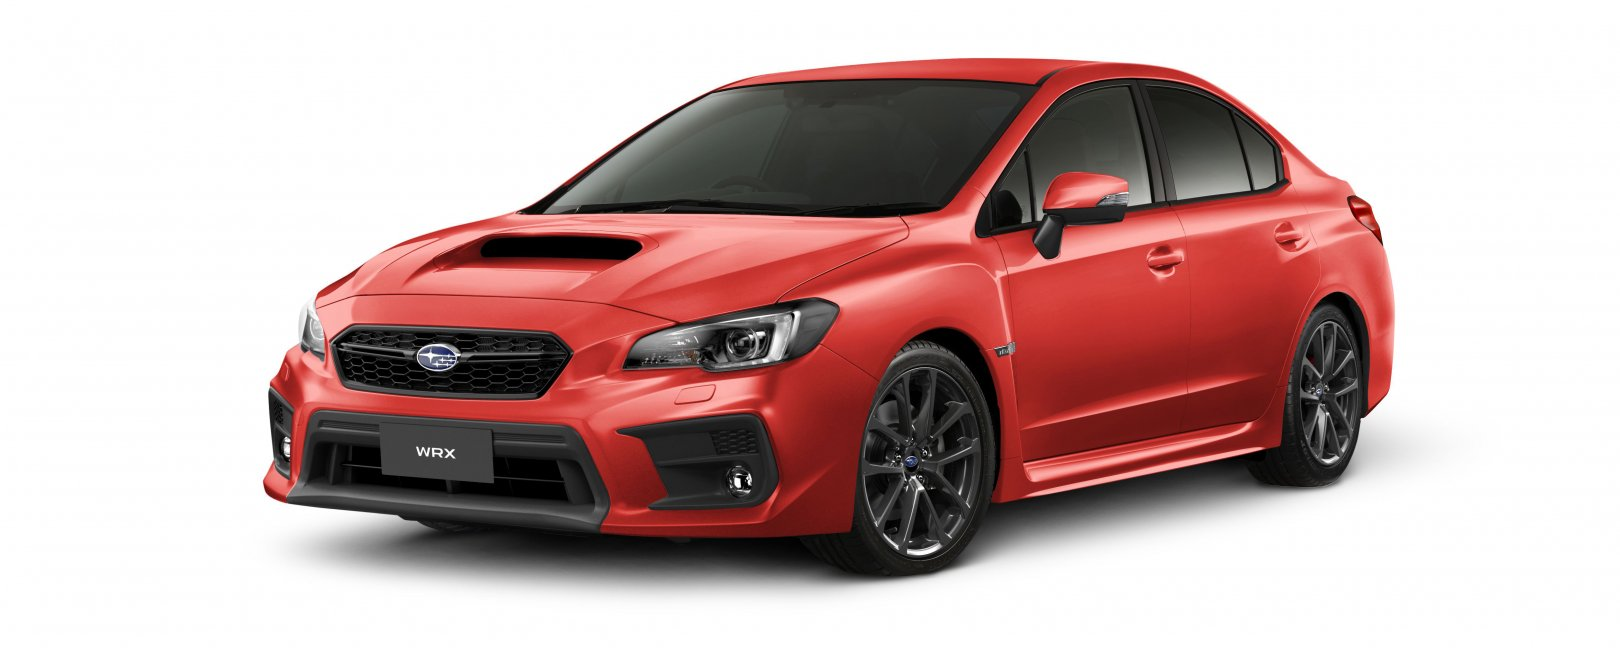 2020 WRX in pure red